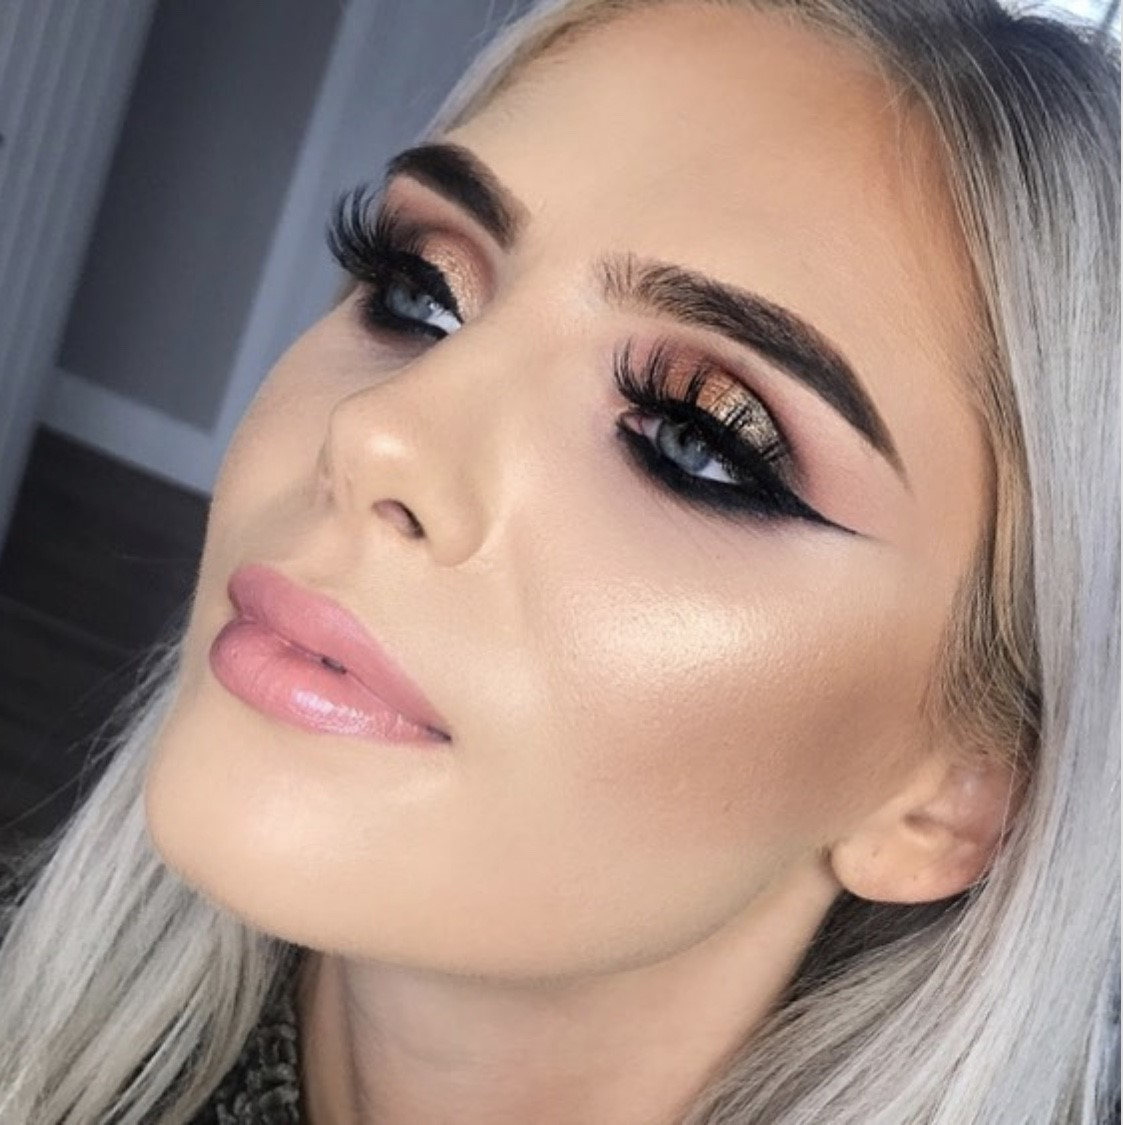 DAY MAKEUP £45 / 45MIN - From natural to radiant, we'll create the perfect day look for you. You'll also receive expert advice on the most flattering shades for your complexion.